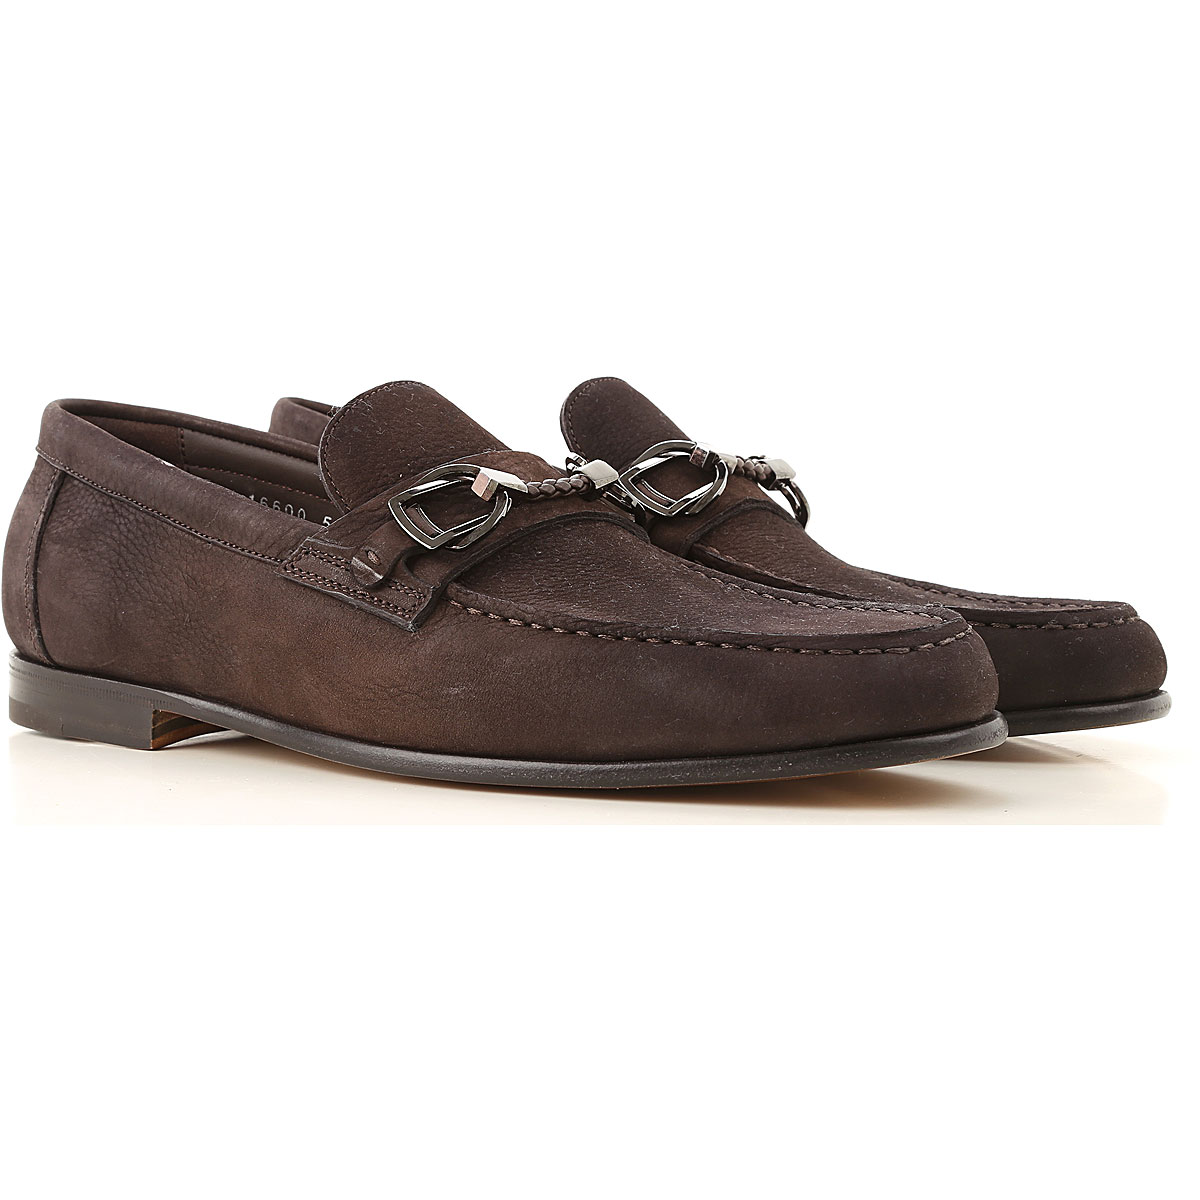 Santoni Loafers for Men, Dark Brown, Leather, 2019, 10 10.5 11 11.5 7 8 8.5 9 9.5